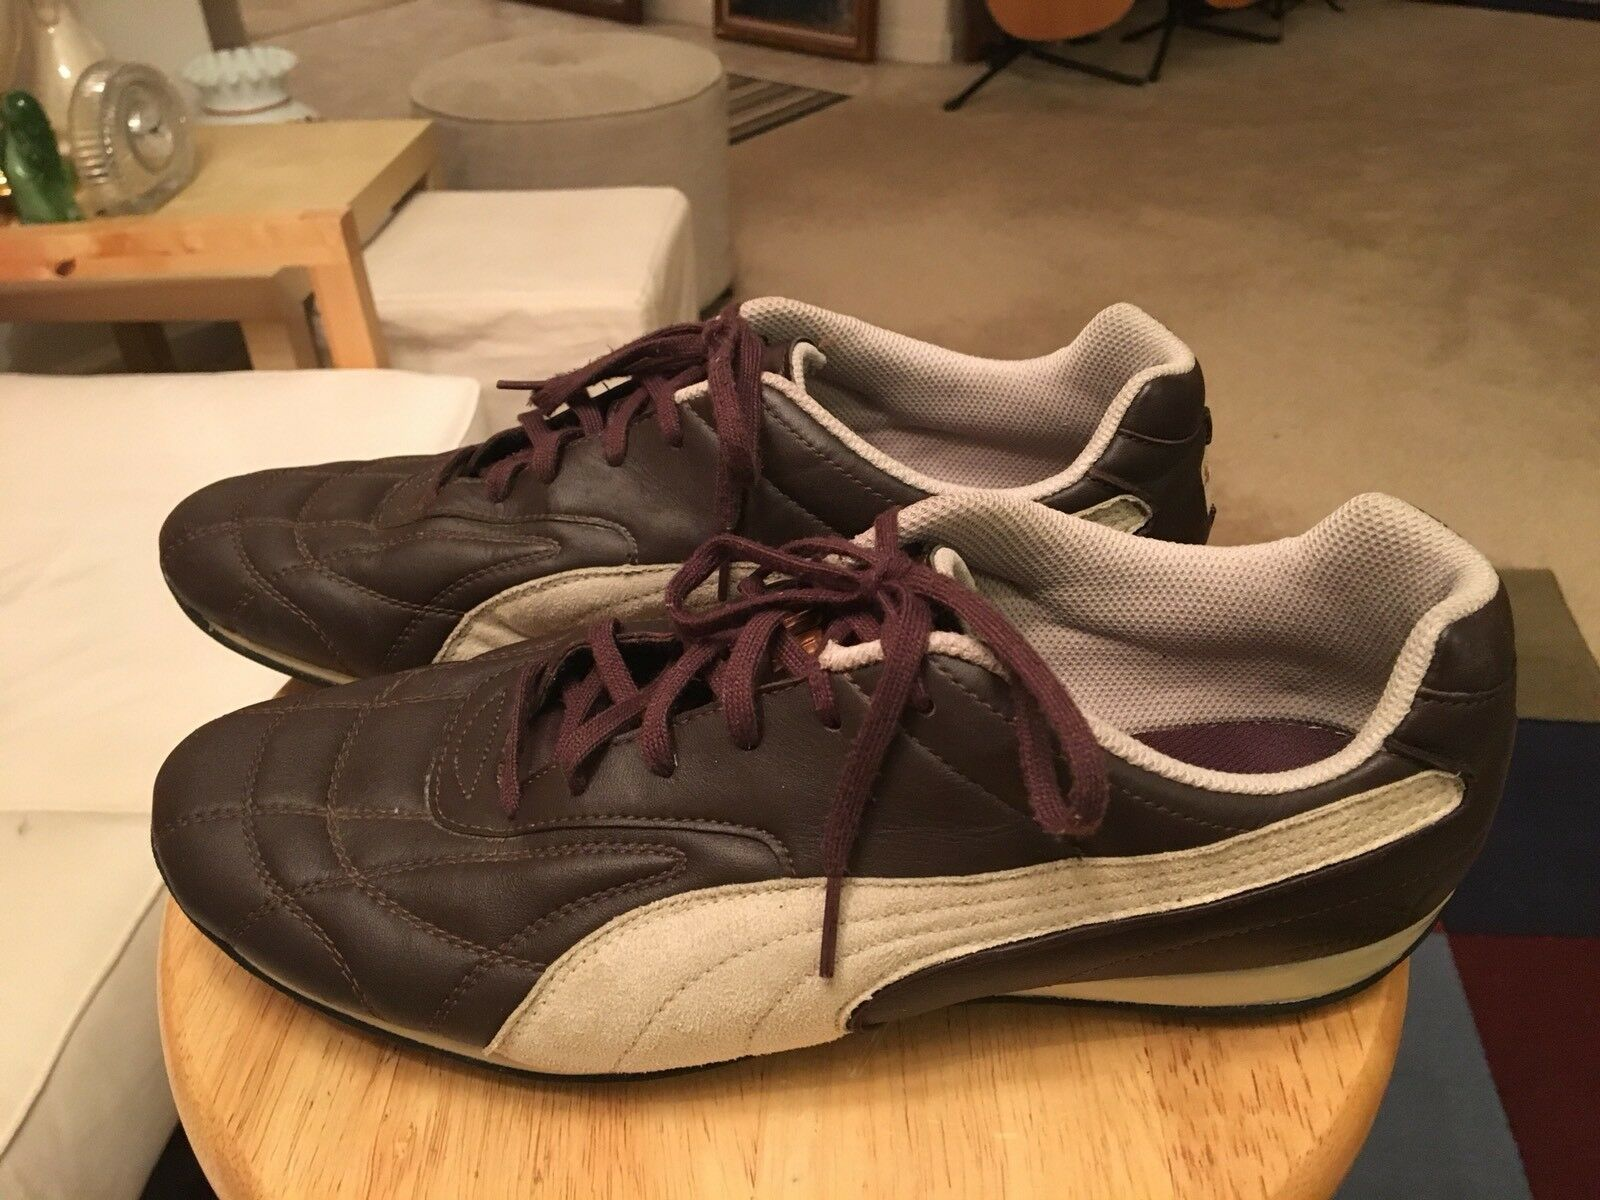 Puma Brown/Beige Trim Men's US11.5 Leather Athletic Sneakers Shoes